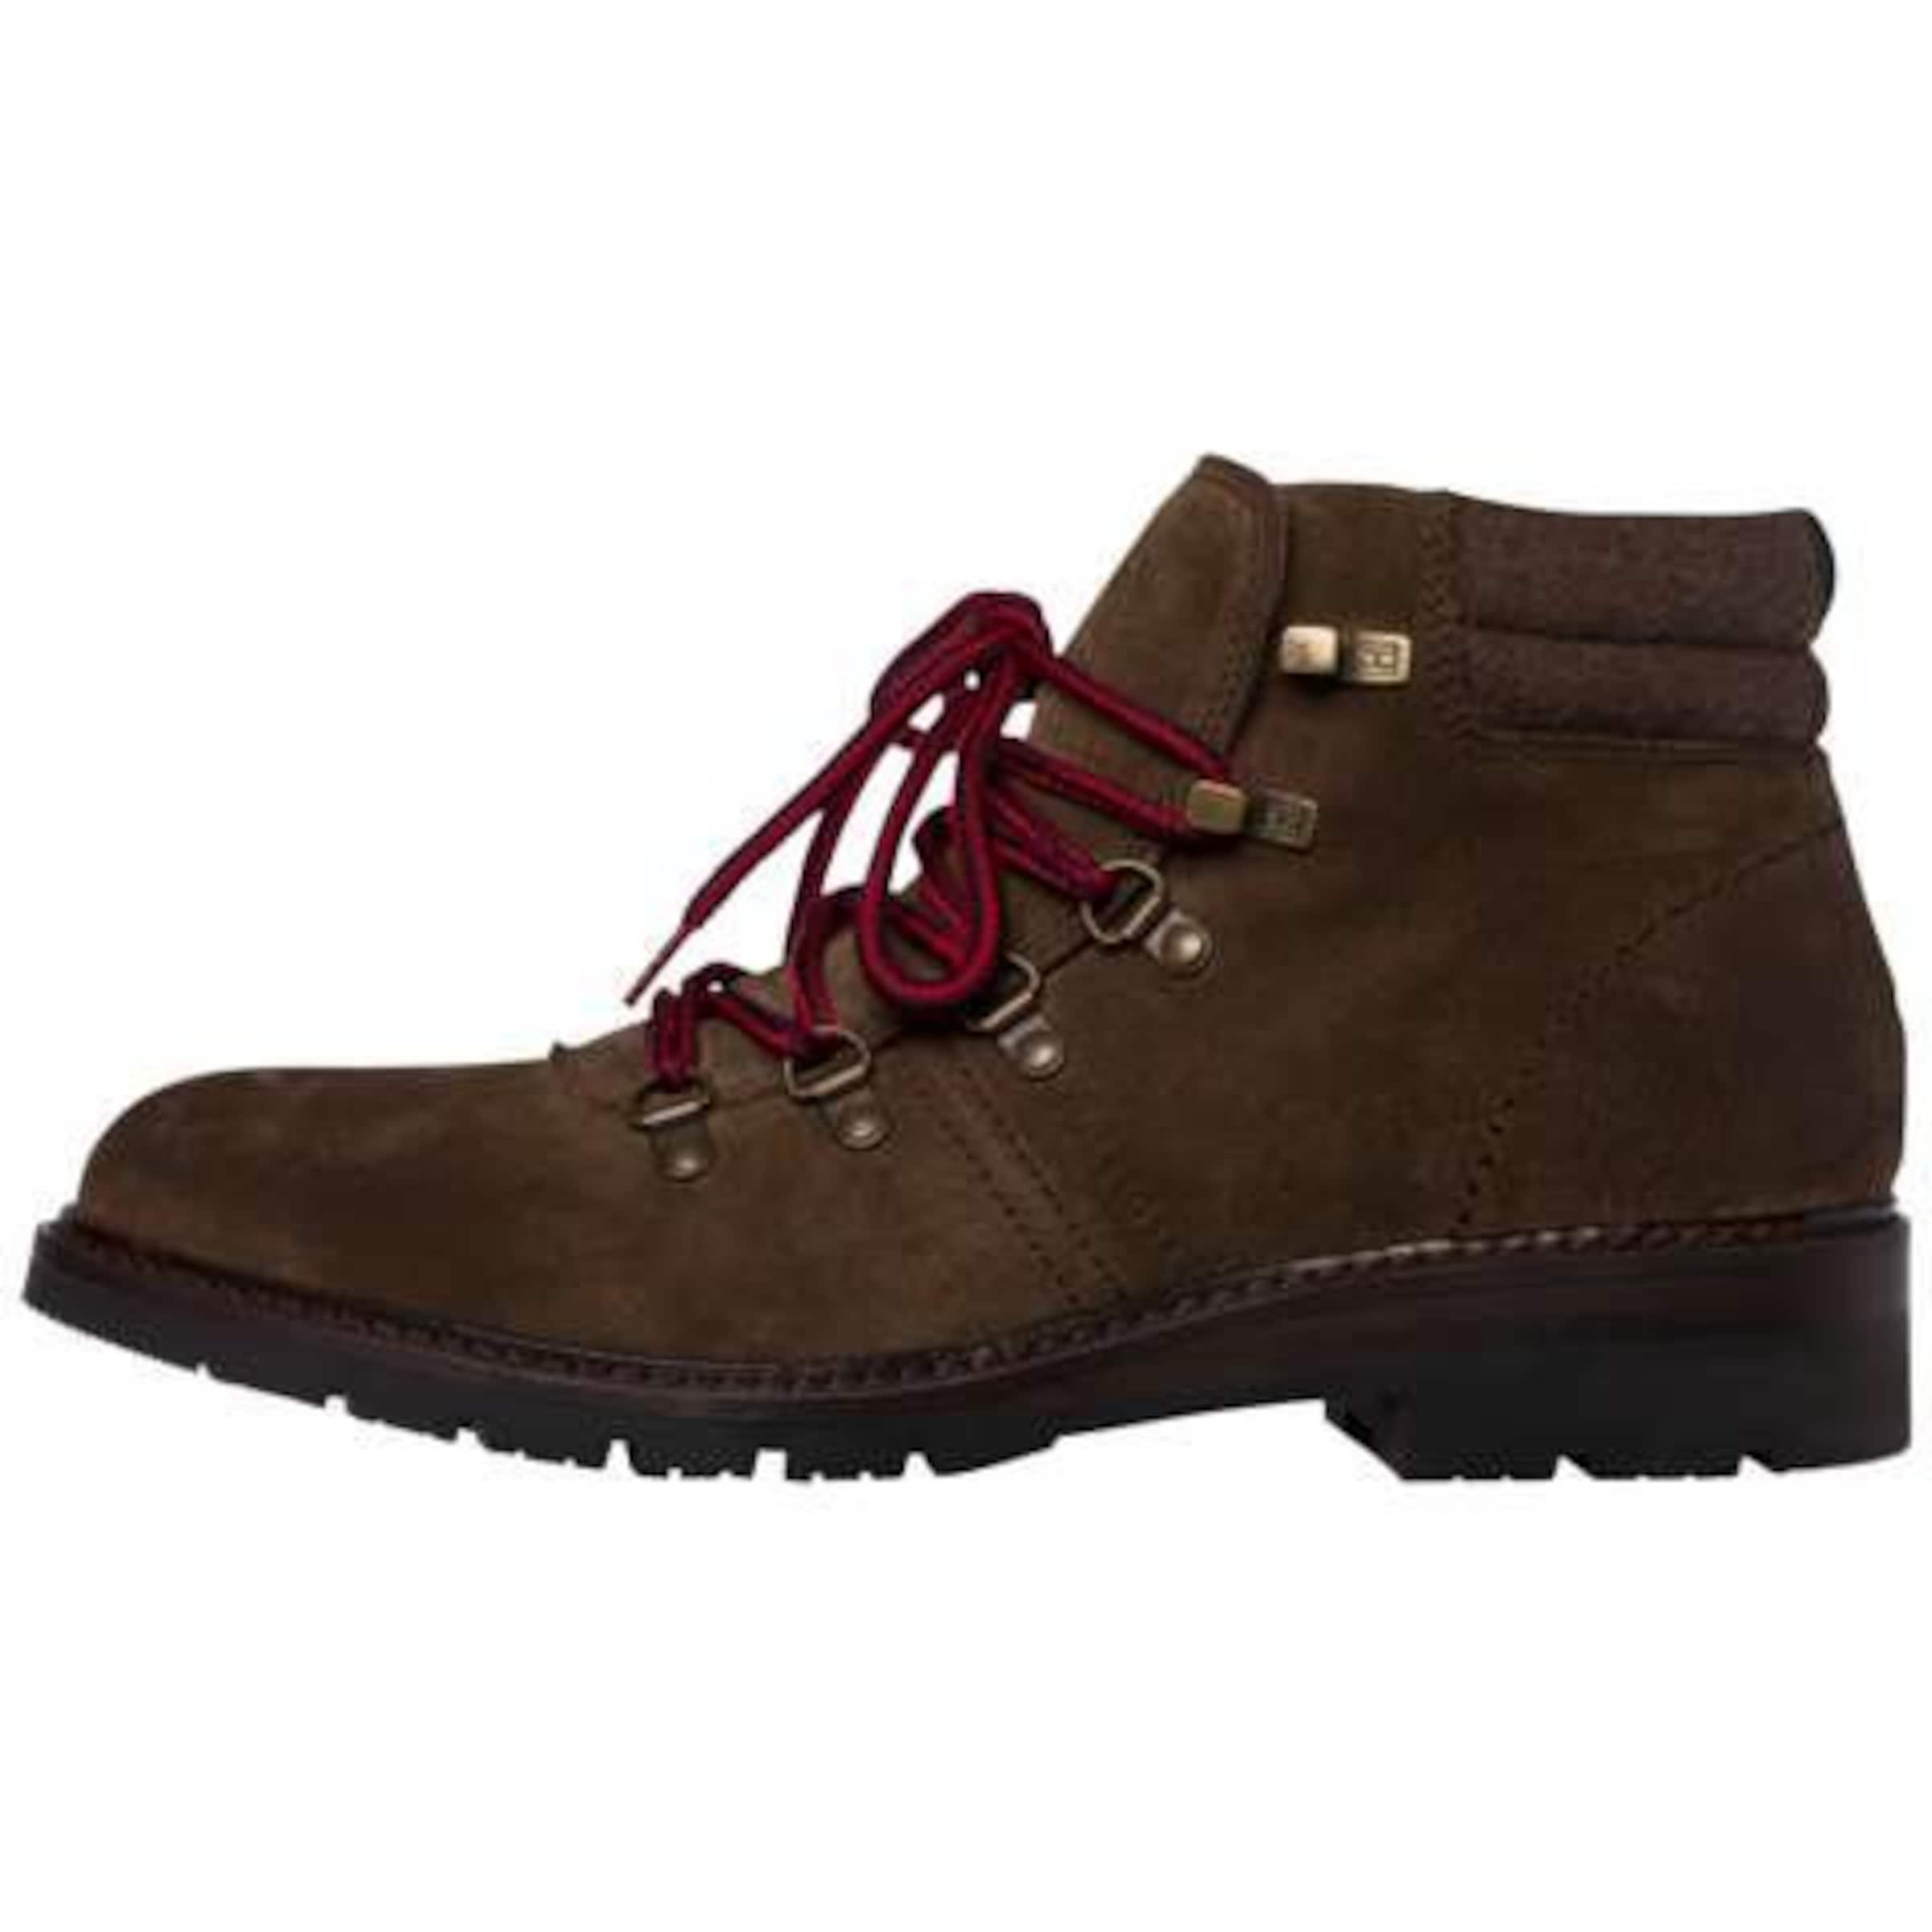 TOMMY TOMMY TOMMY HILFIGER Boots  T2285RUNK 2B 3dfa59